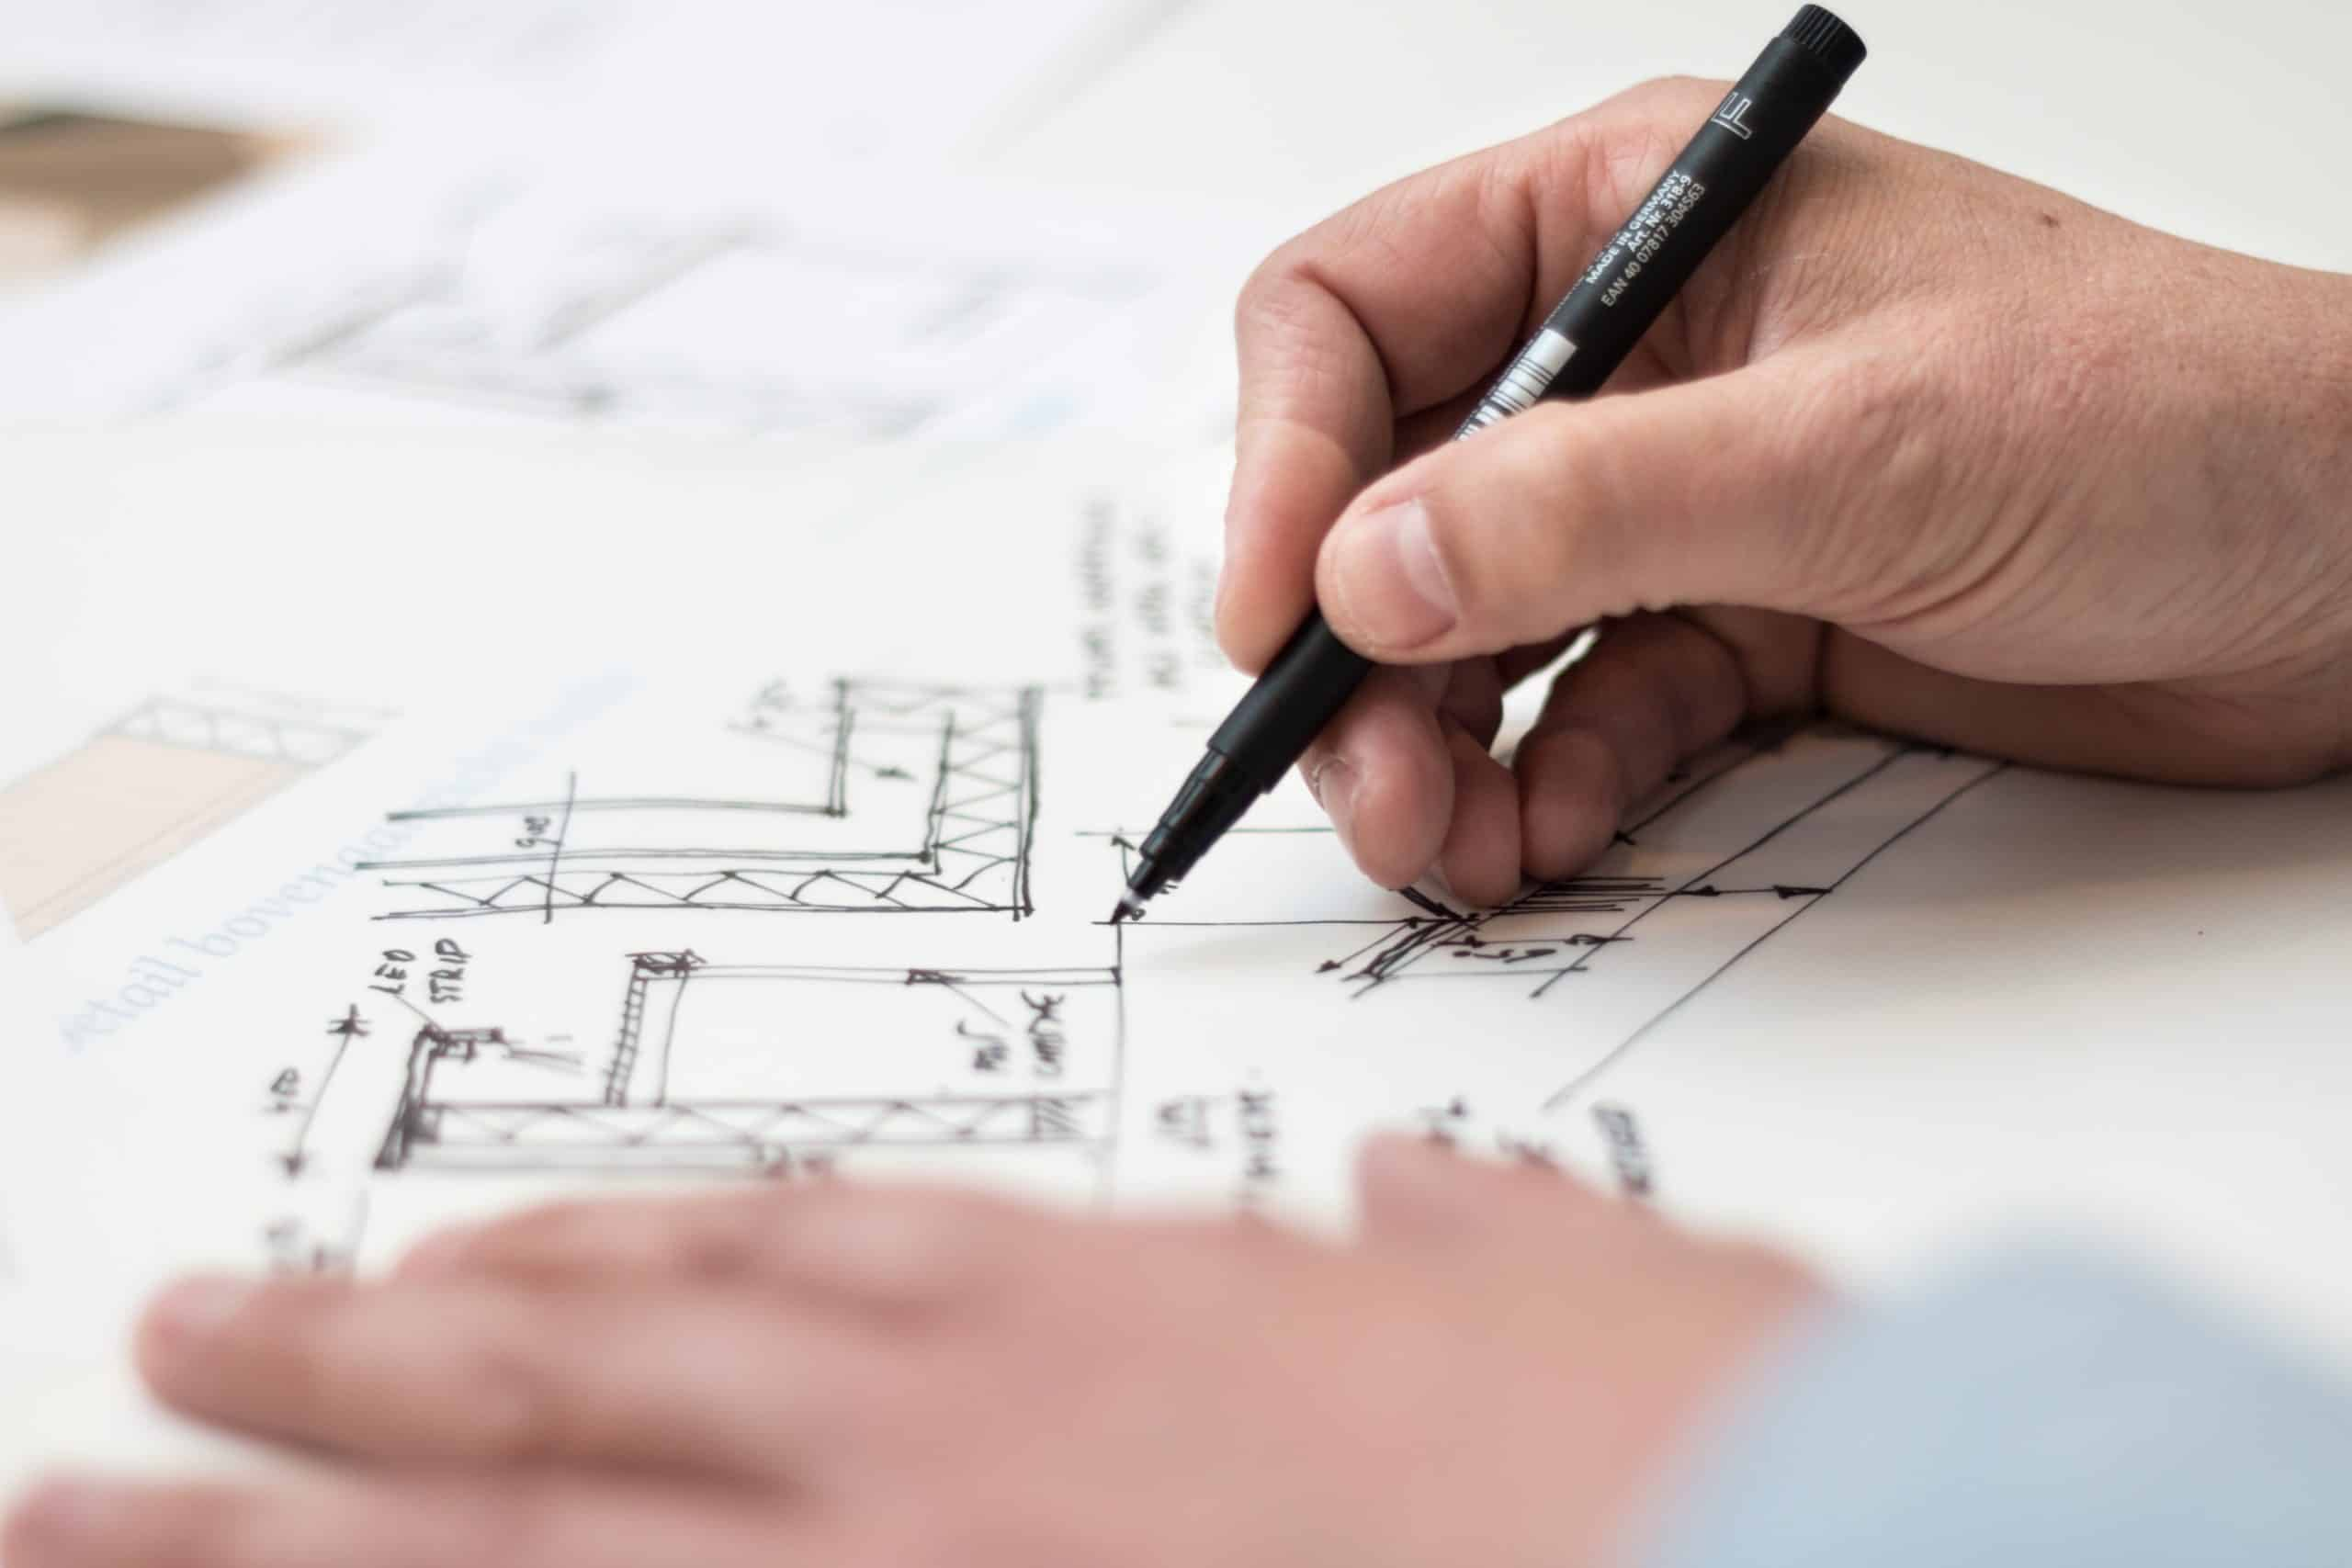 Best Architectural Drawing course tutorial class certification training online